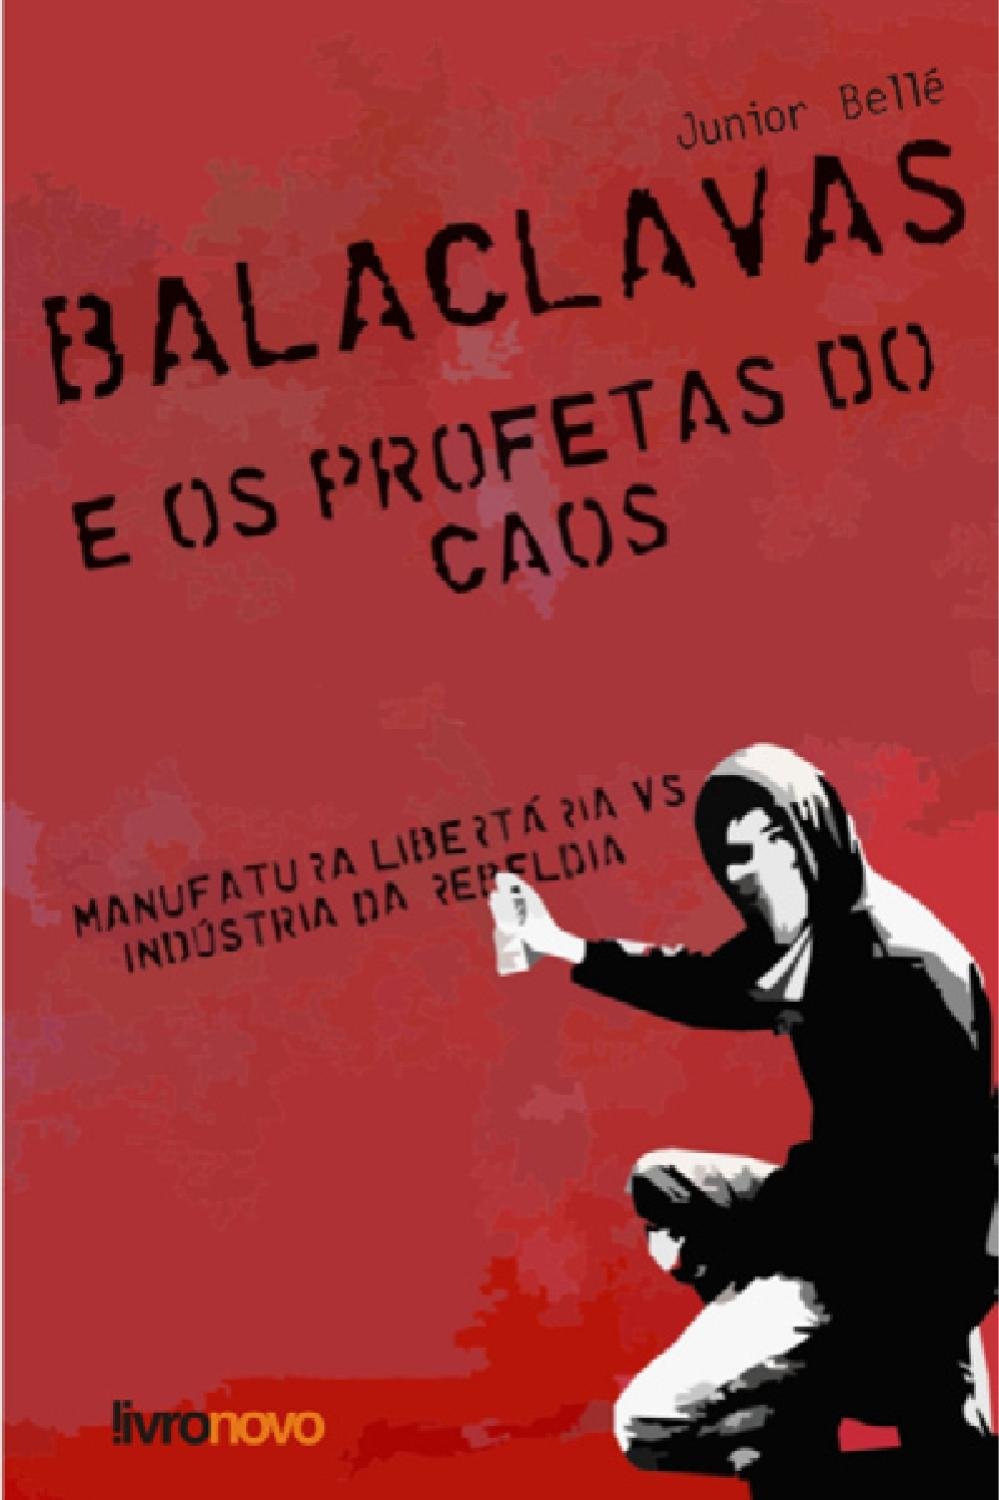 3f0cd087f3f Balaclavas e os Profetas do Caos by Junior Bellé - issuu